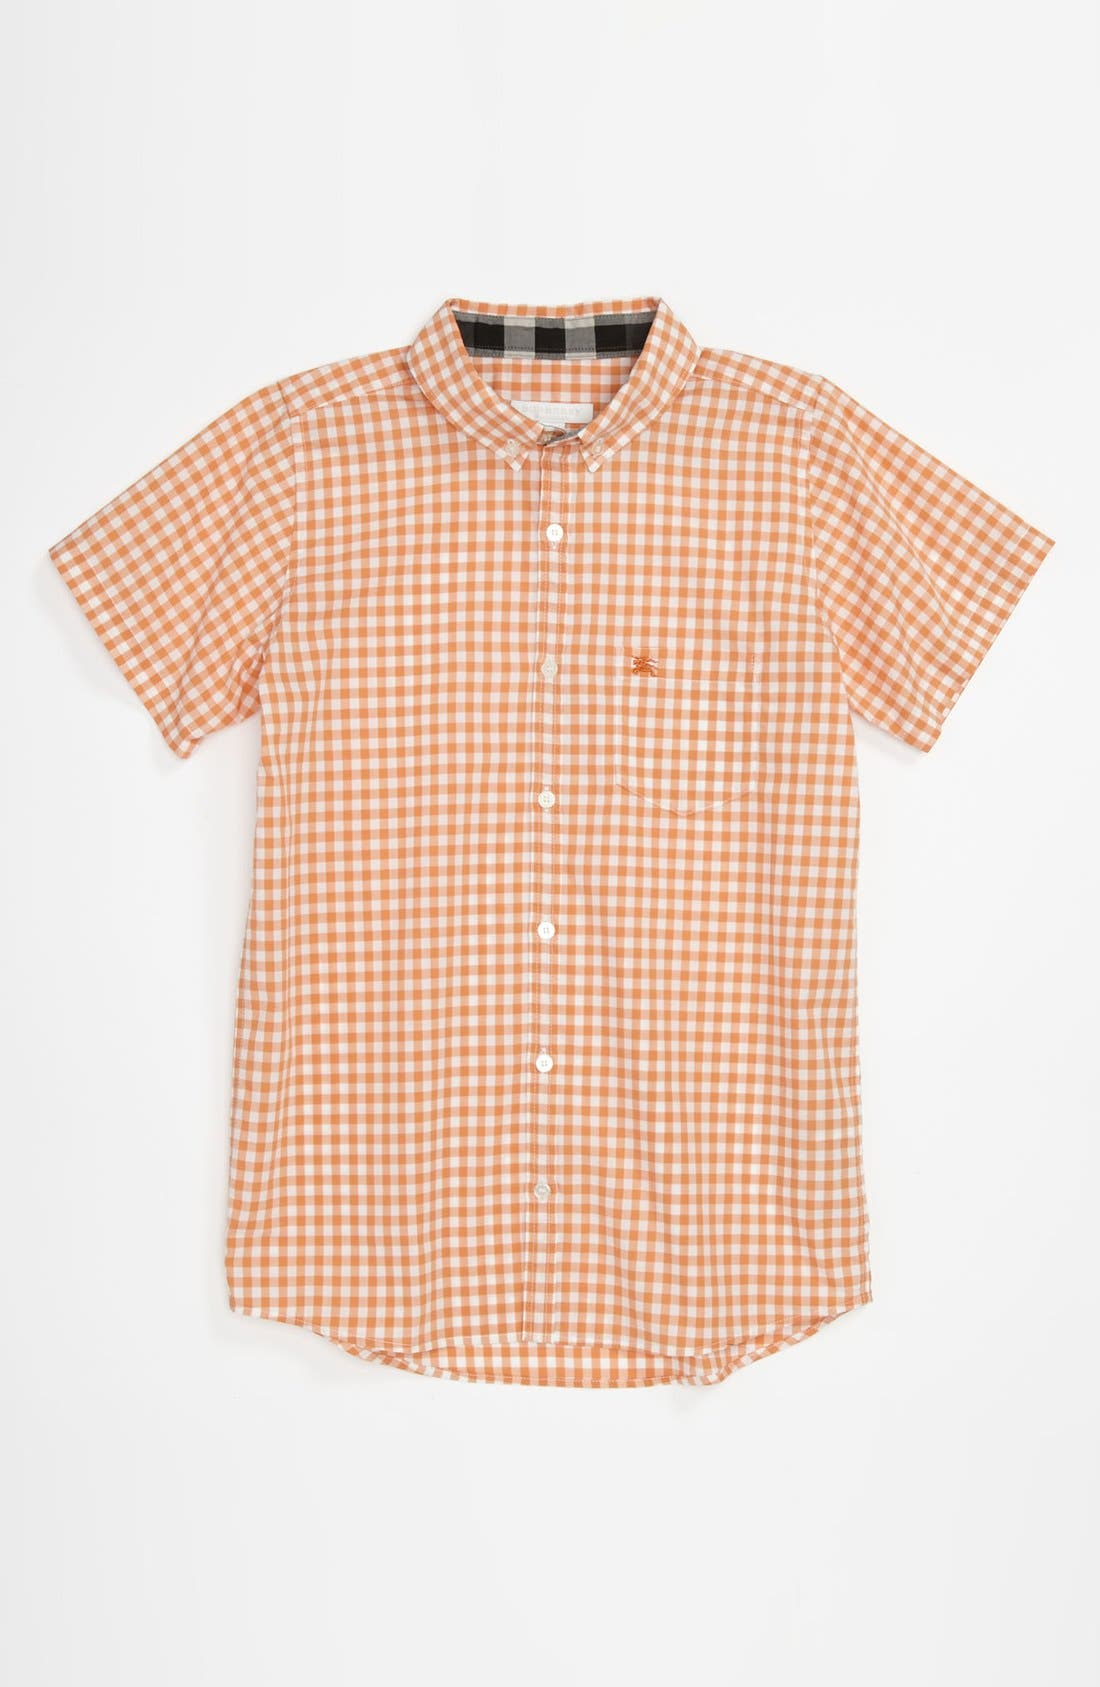 Alternate Image 1 Selected - Burberry 'Mini Fred' Woven Shirt (Little Boys & Big Boys)